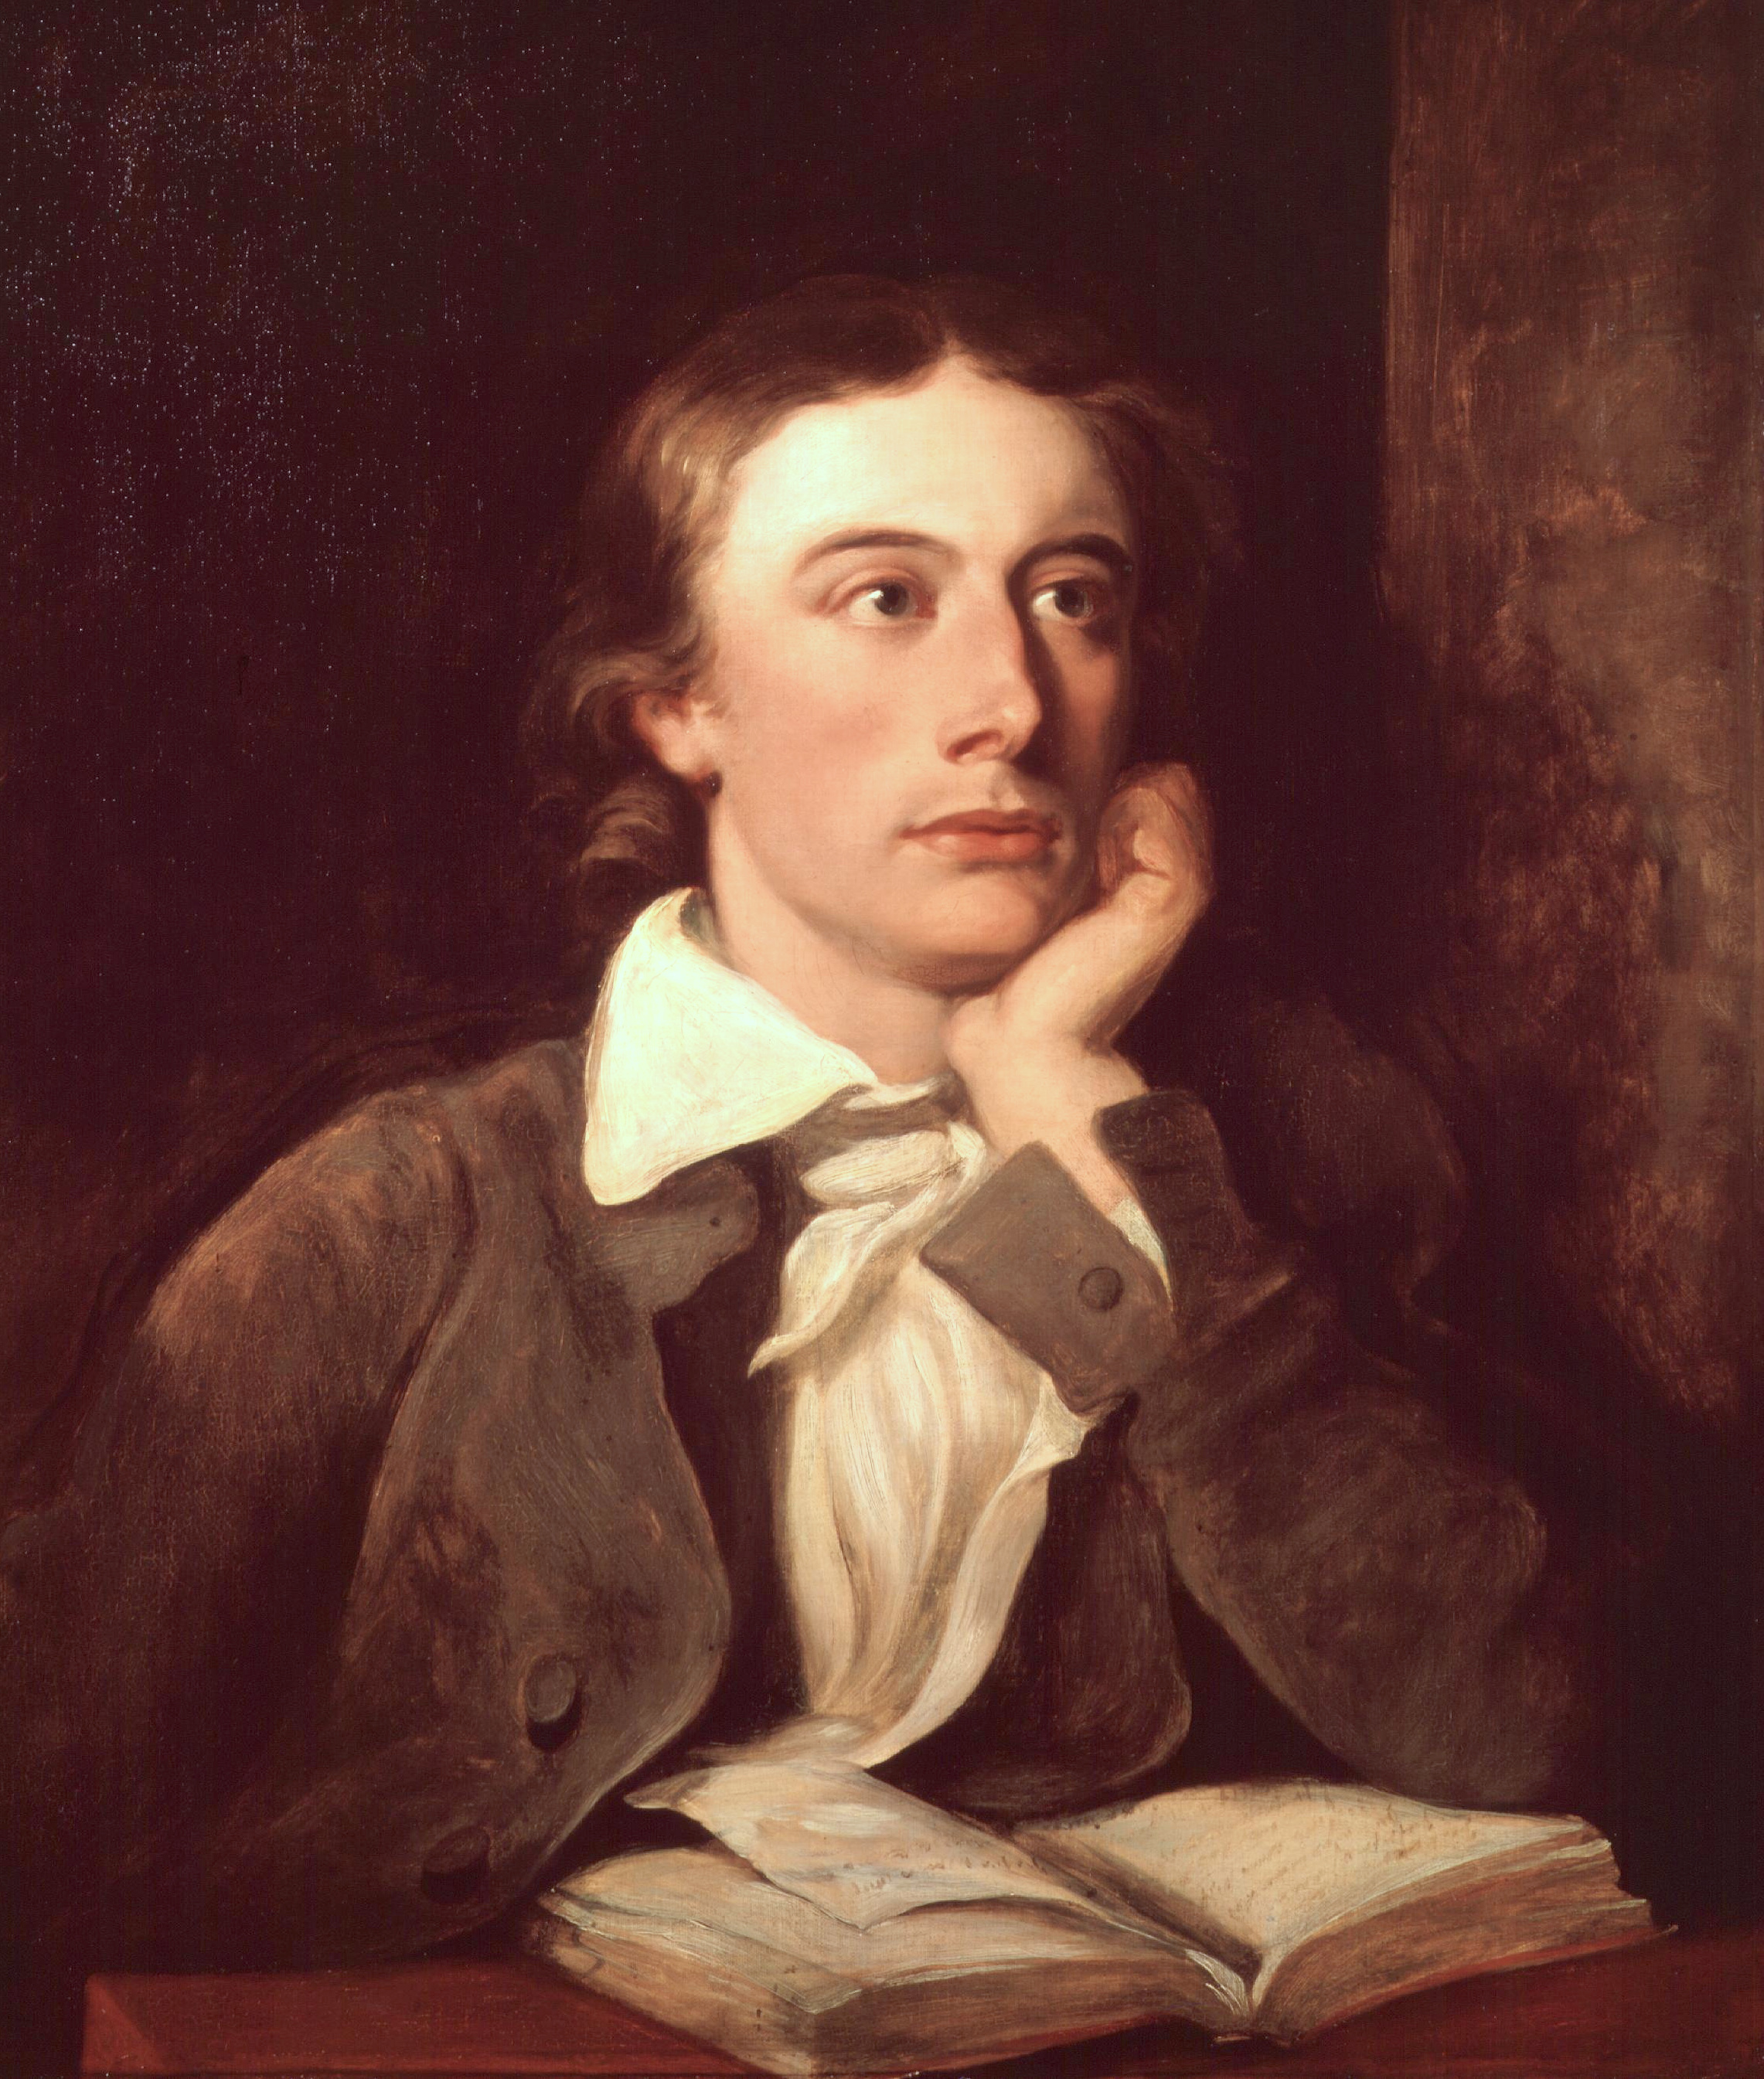 John_Keats_by_William_Hilton.jpg